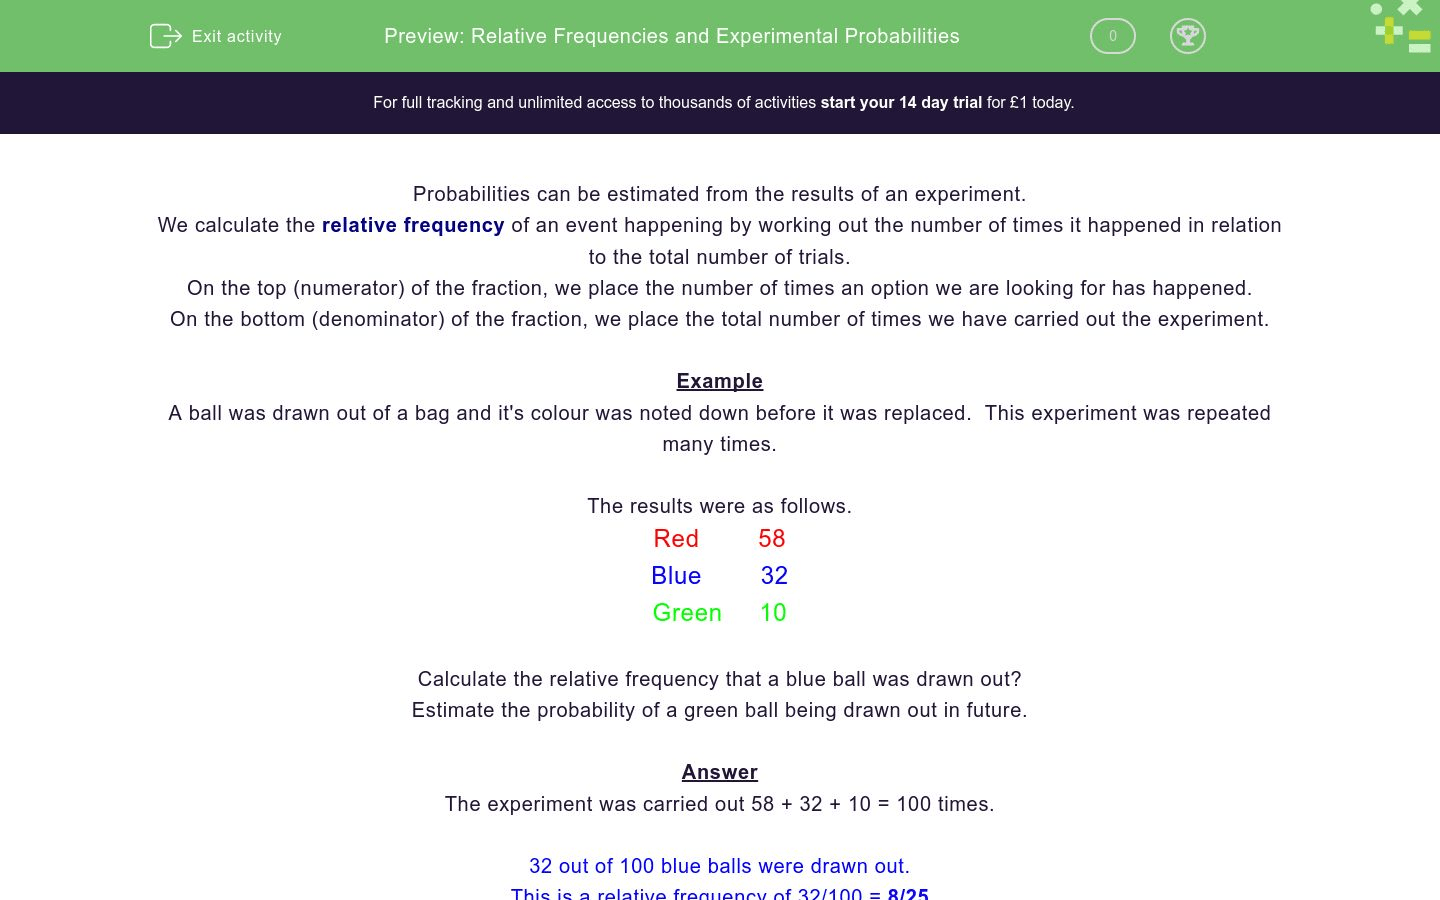 Relative Frequencies And Experimental Probabilities